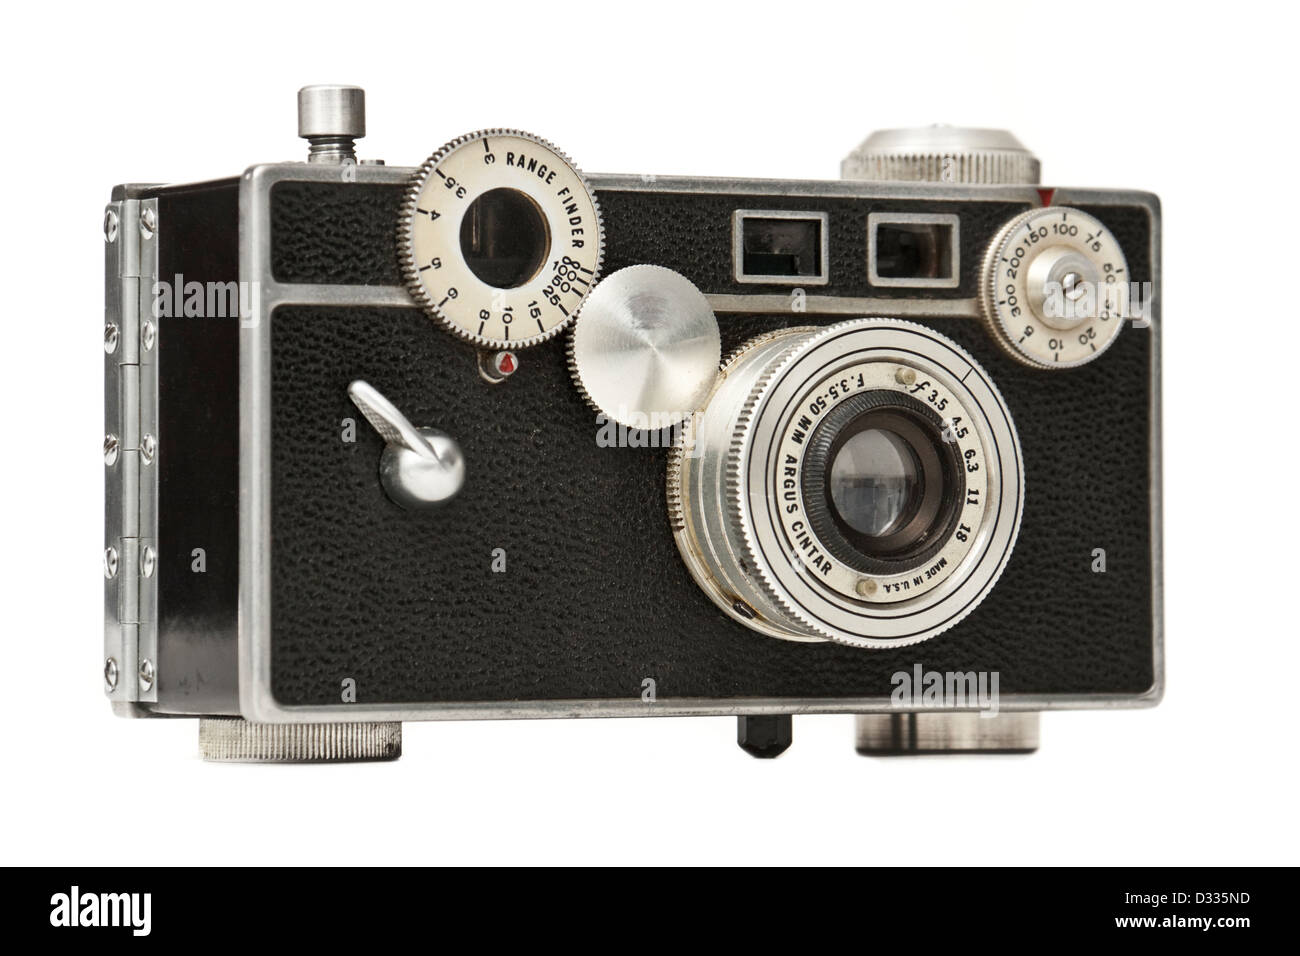 Vintage Argus C2 (aka 'The Brick') 35mm film camera with coupled rangefinder from 1938-1942 - Stock Image